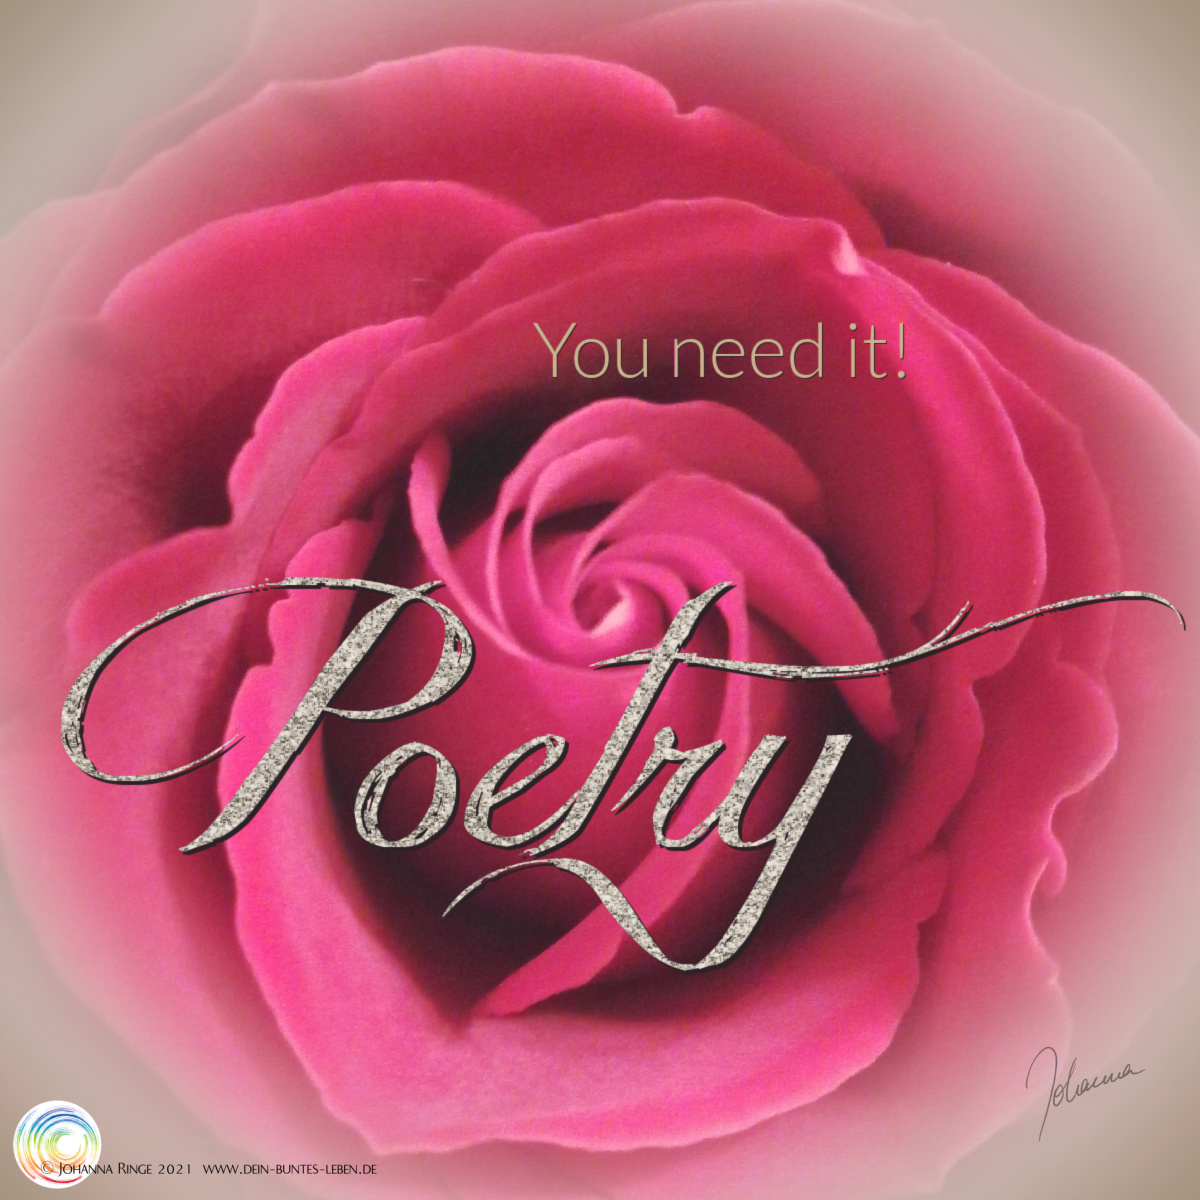 Poetry (you need it!) - Text on photo of a rose. ©Johanna Ringe 2021 www.johannaringe.com